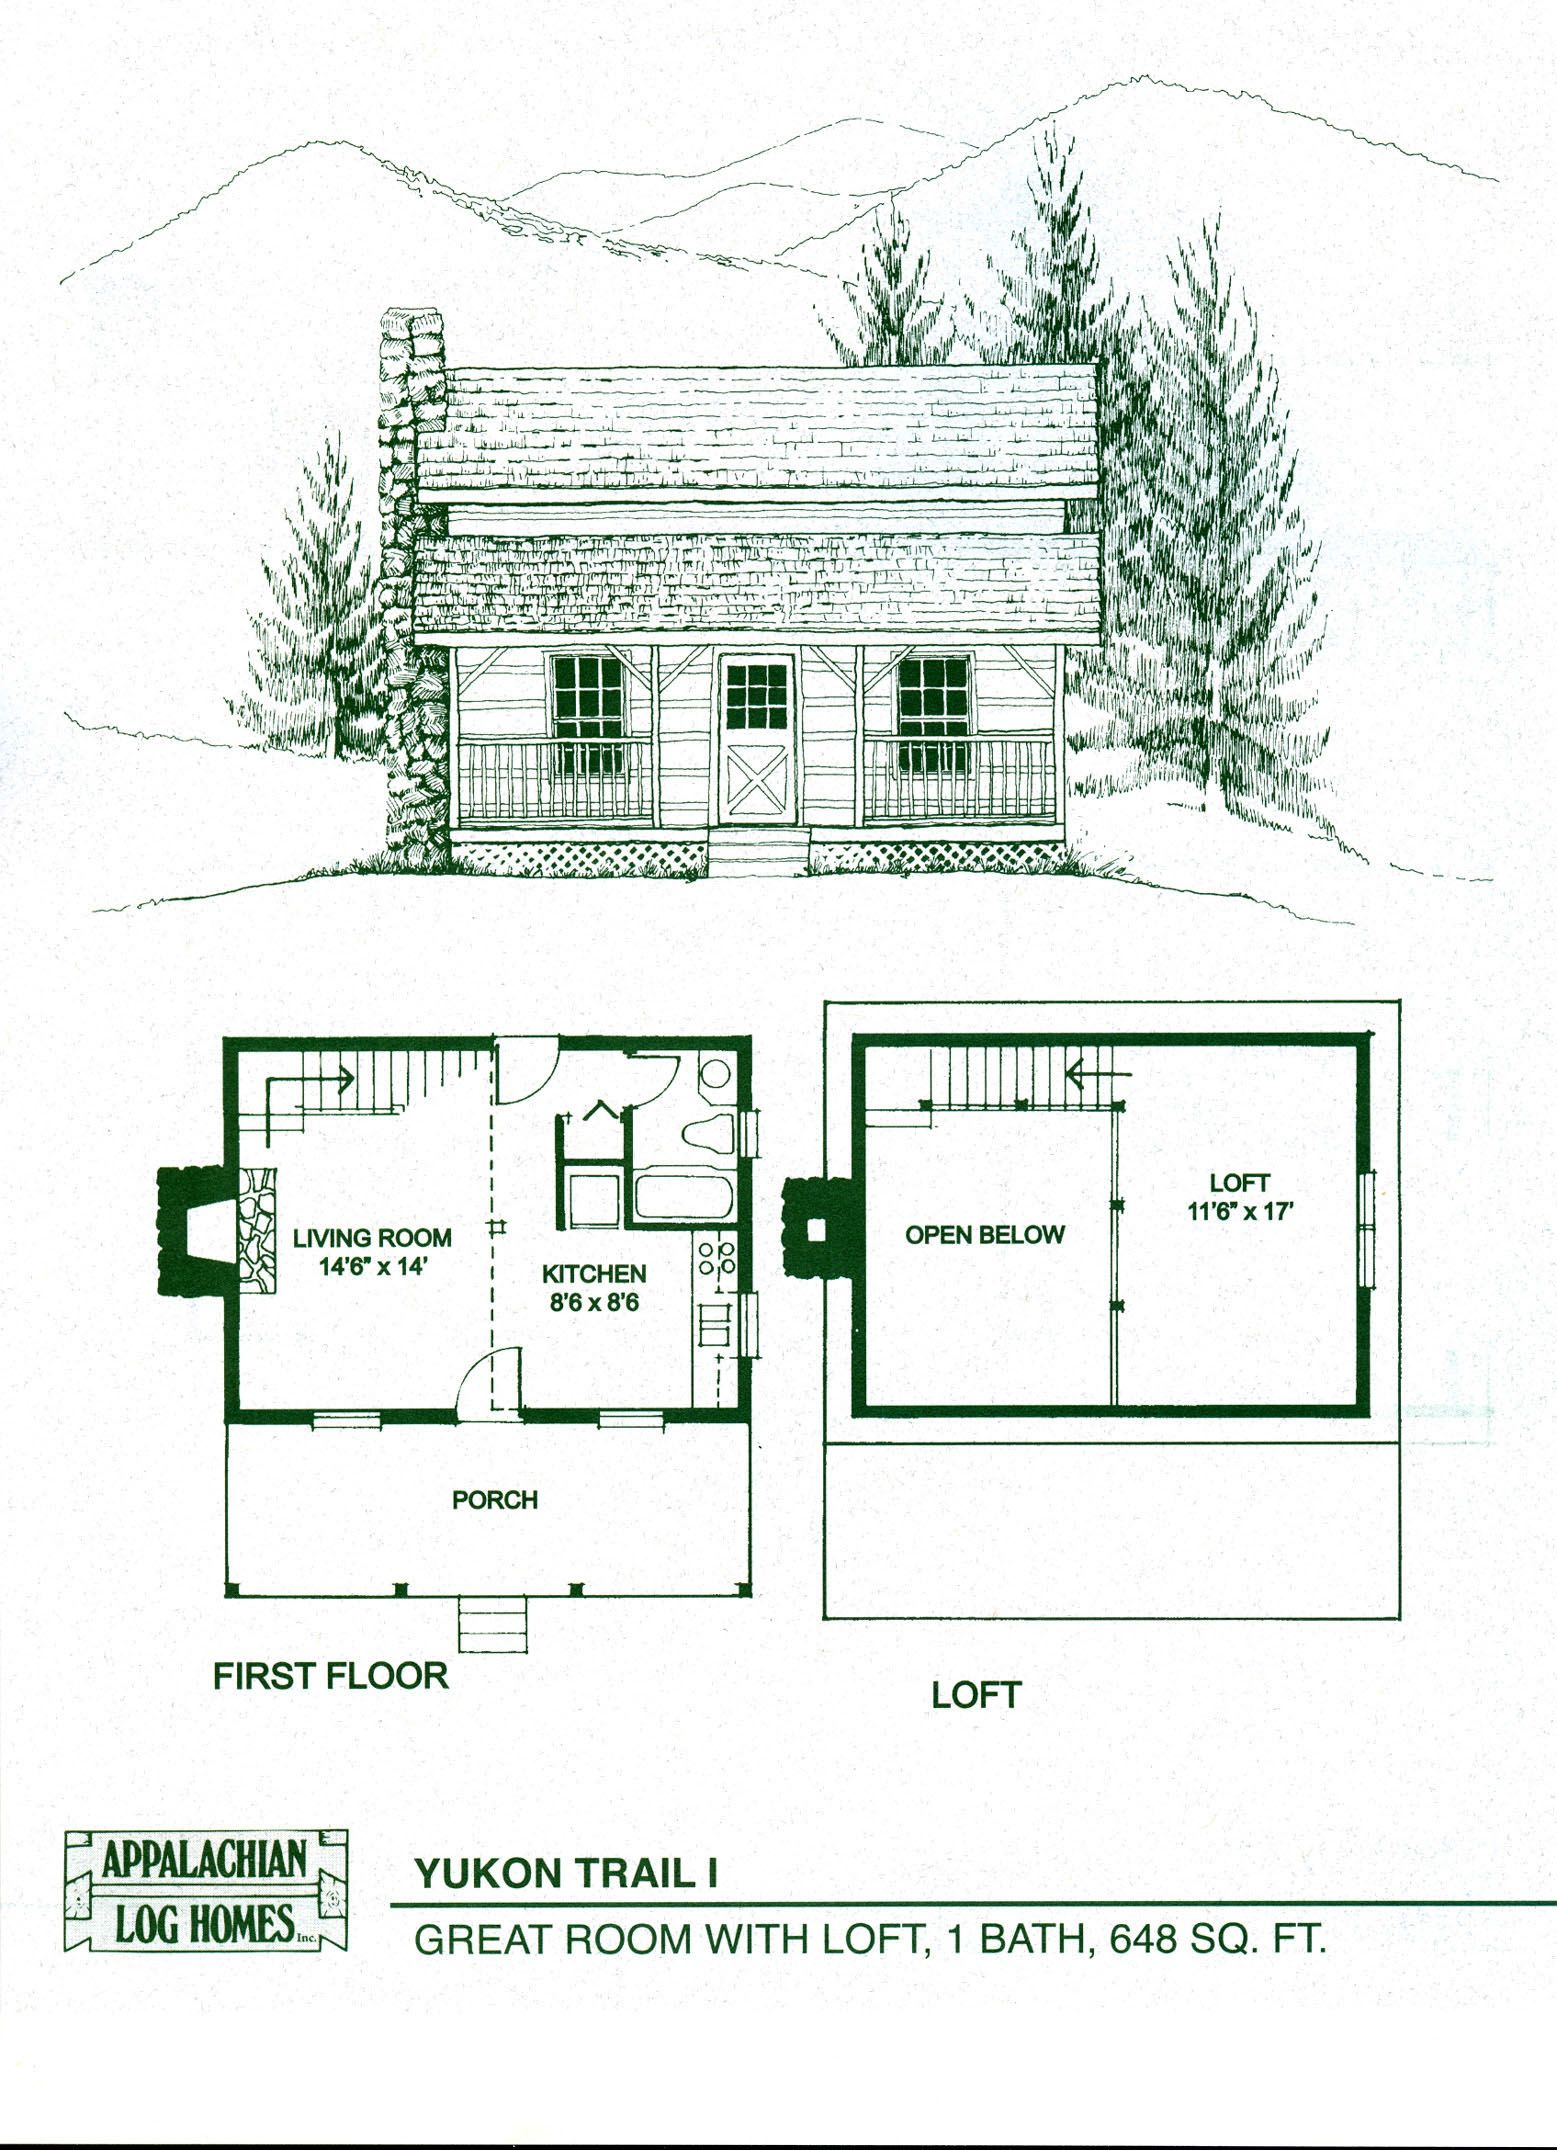 Log home floor plans log cabin kits appalachian log Cabin floor plan